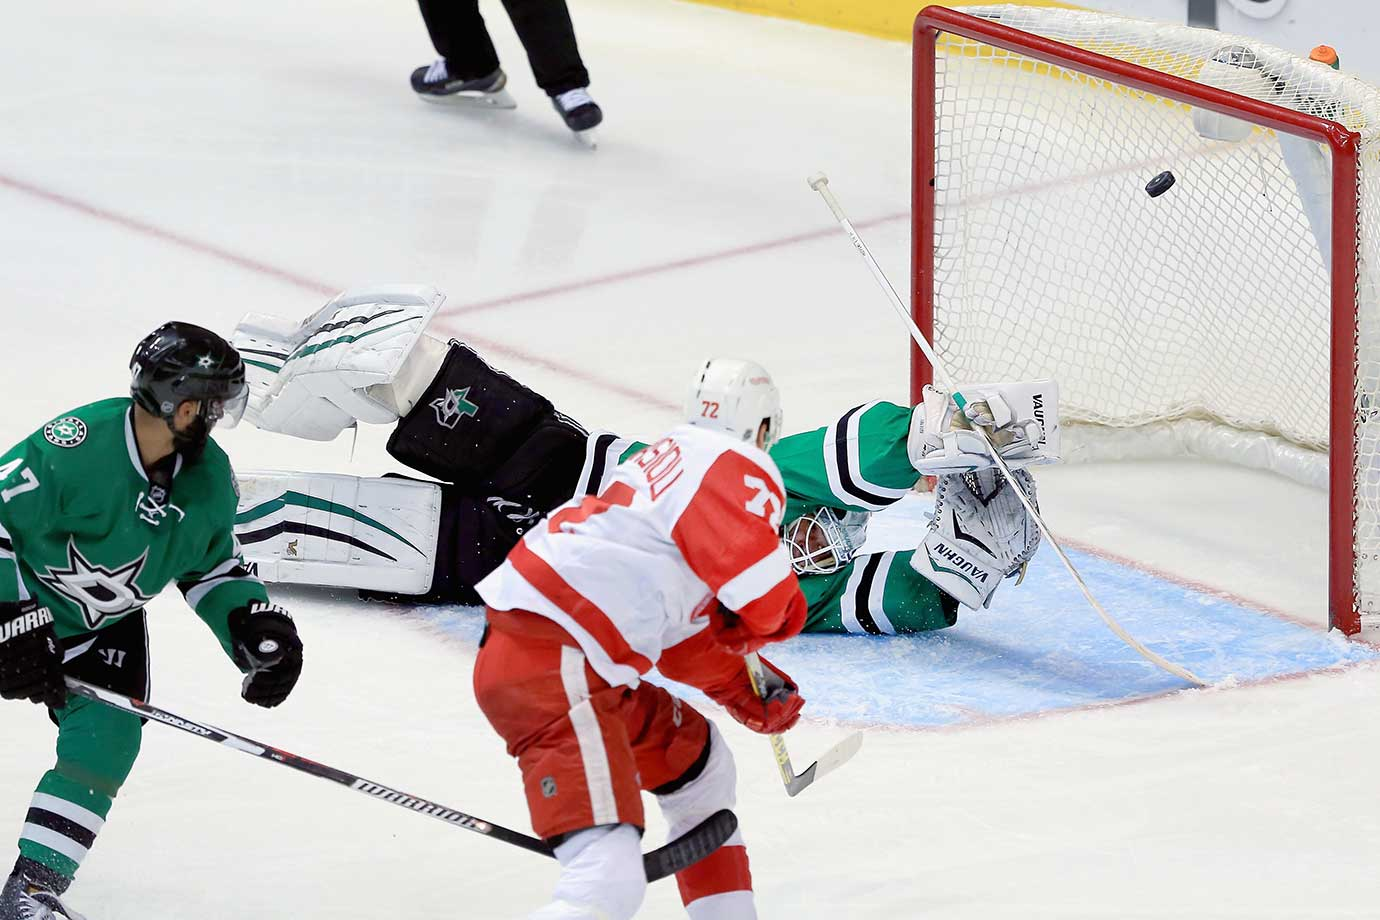 Andreas Athanasiou of the Detroit Red Wings scores against Antti Niemi of the Dallas Stars.